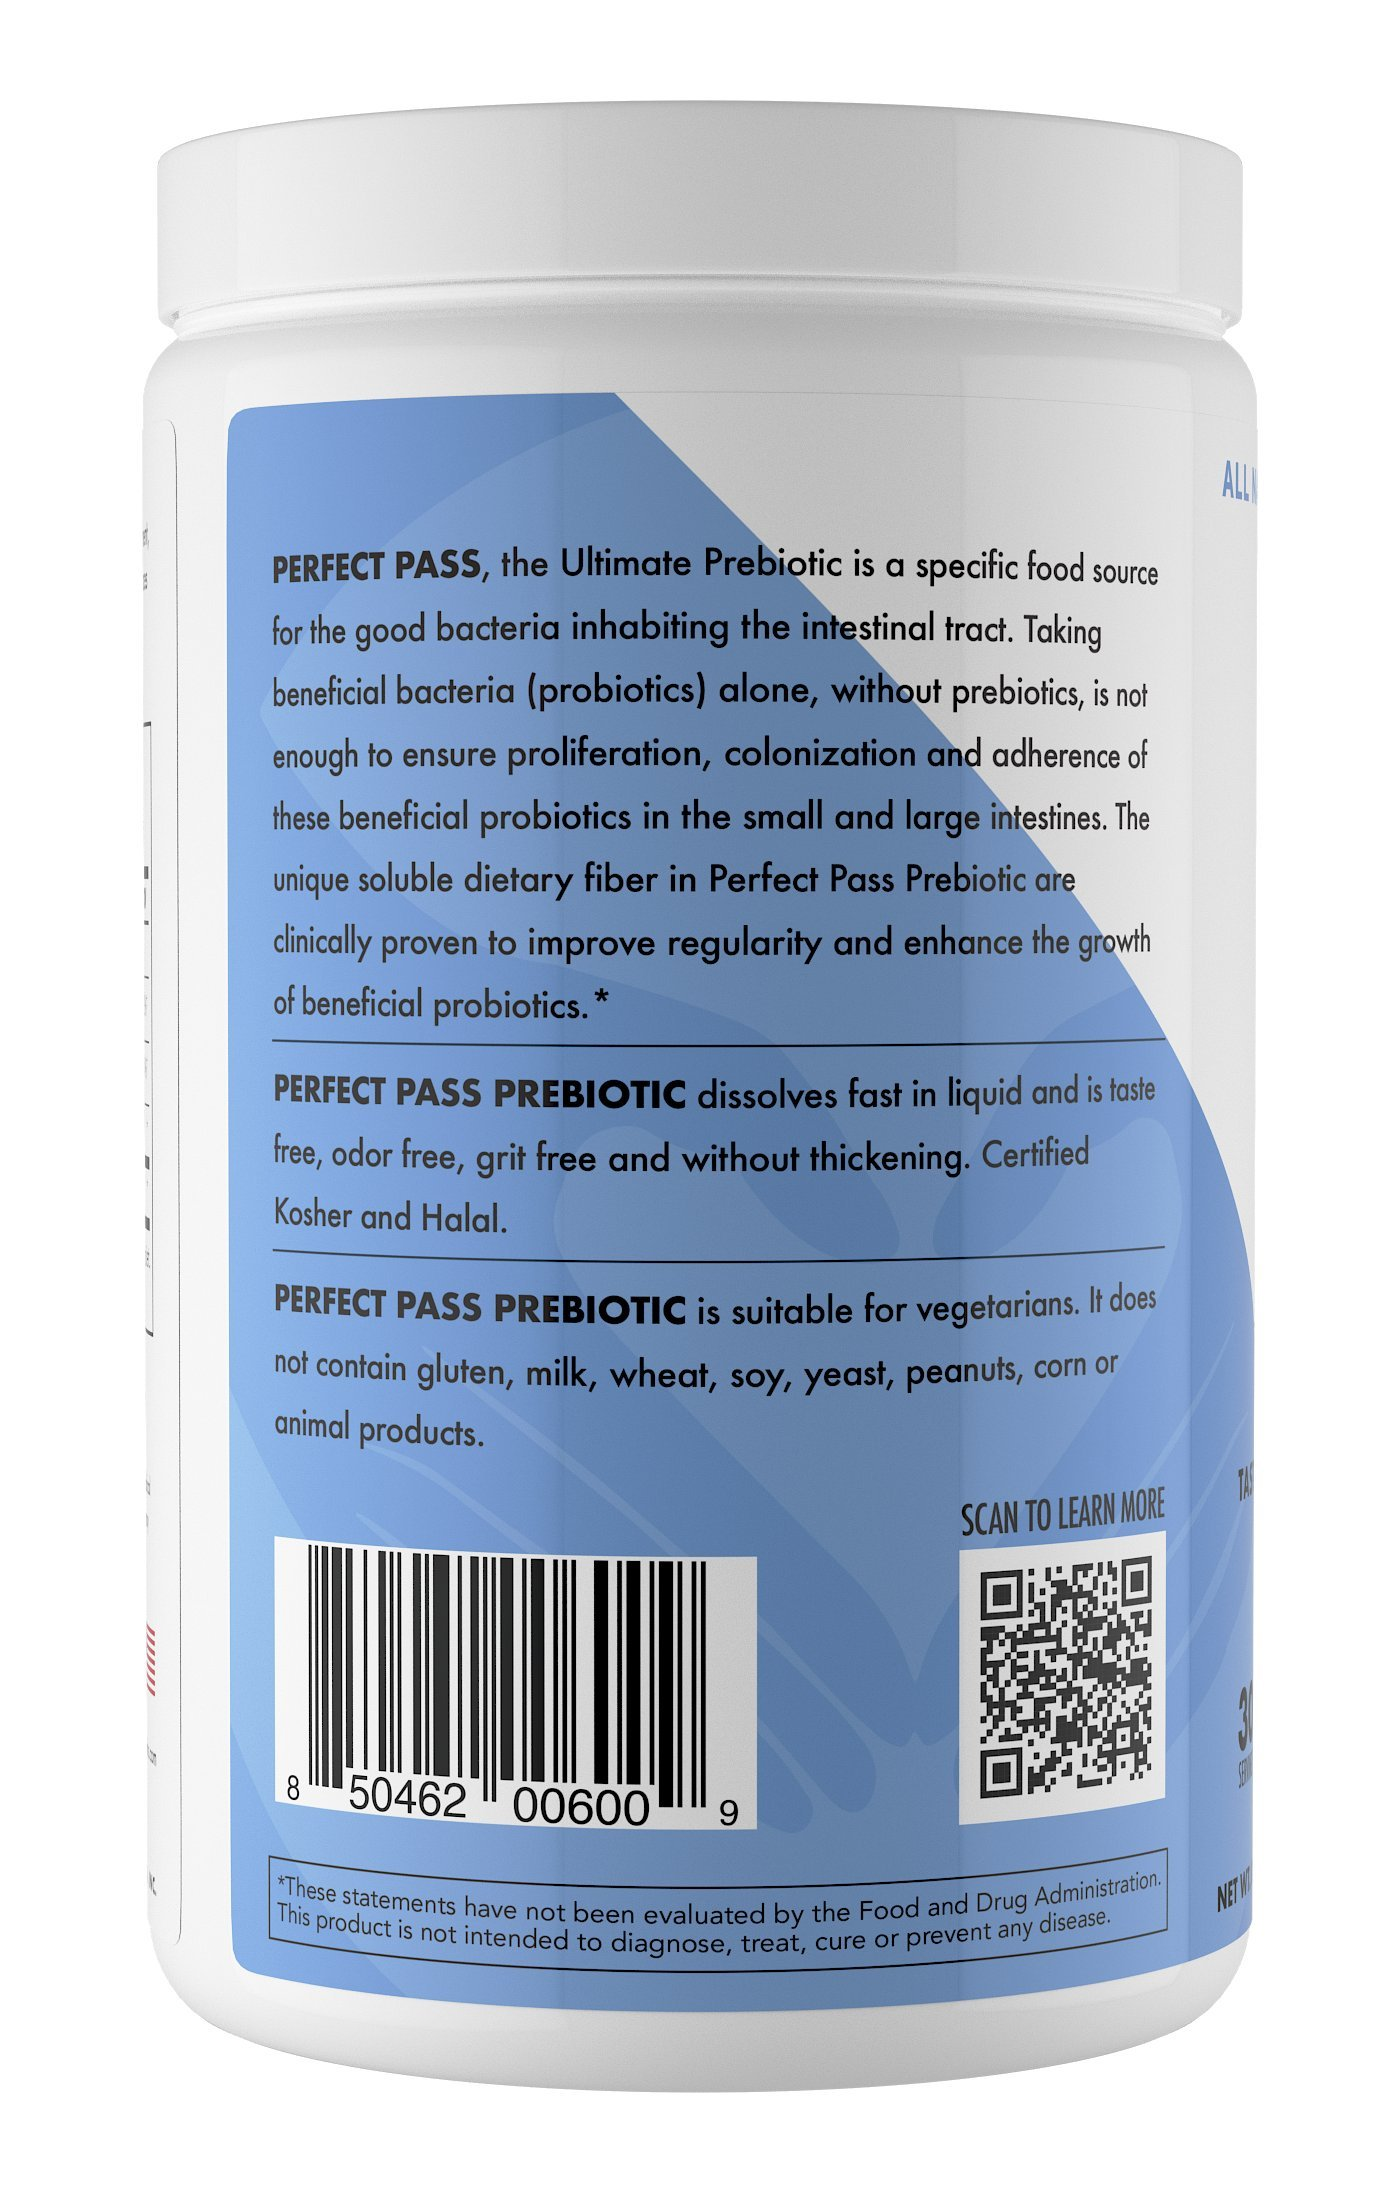 Perfect Pass Prebiotic PHGG Partially Hydrolyzed Guar Gum 210g Powder - 100% Natural Gluten Free Non GMO - Certified Kosher Vegetarian Sugar Free by PERFECT PASS (Image #3)